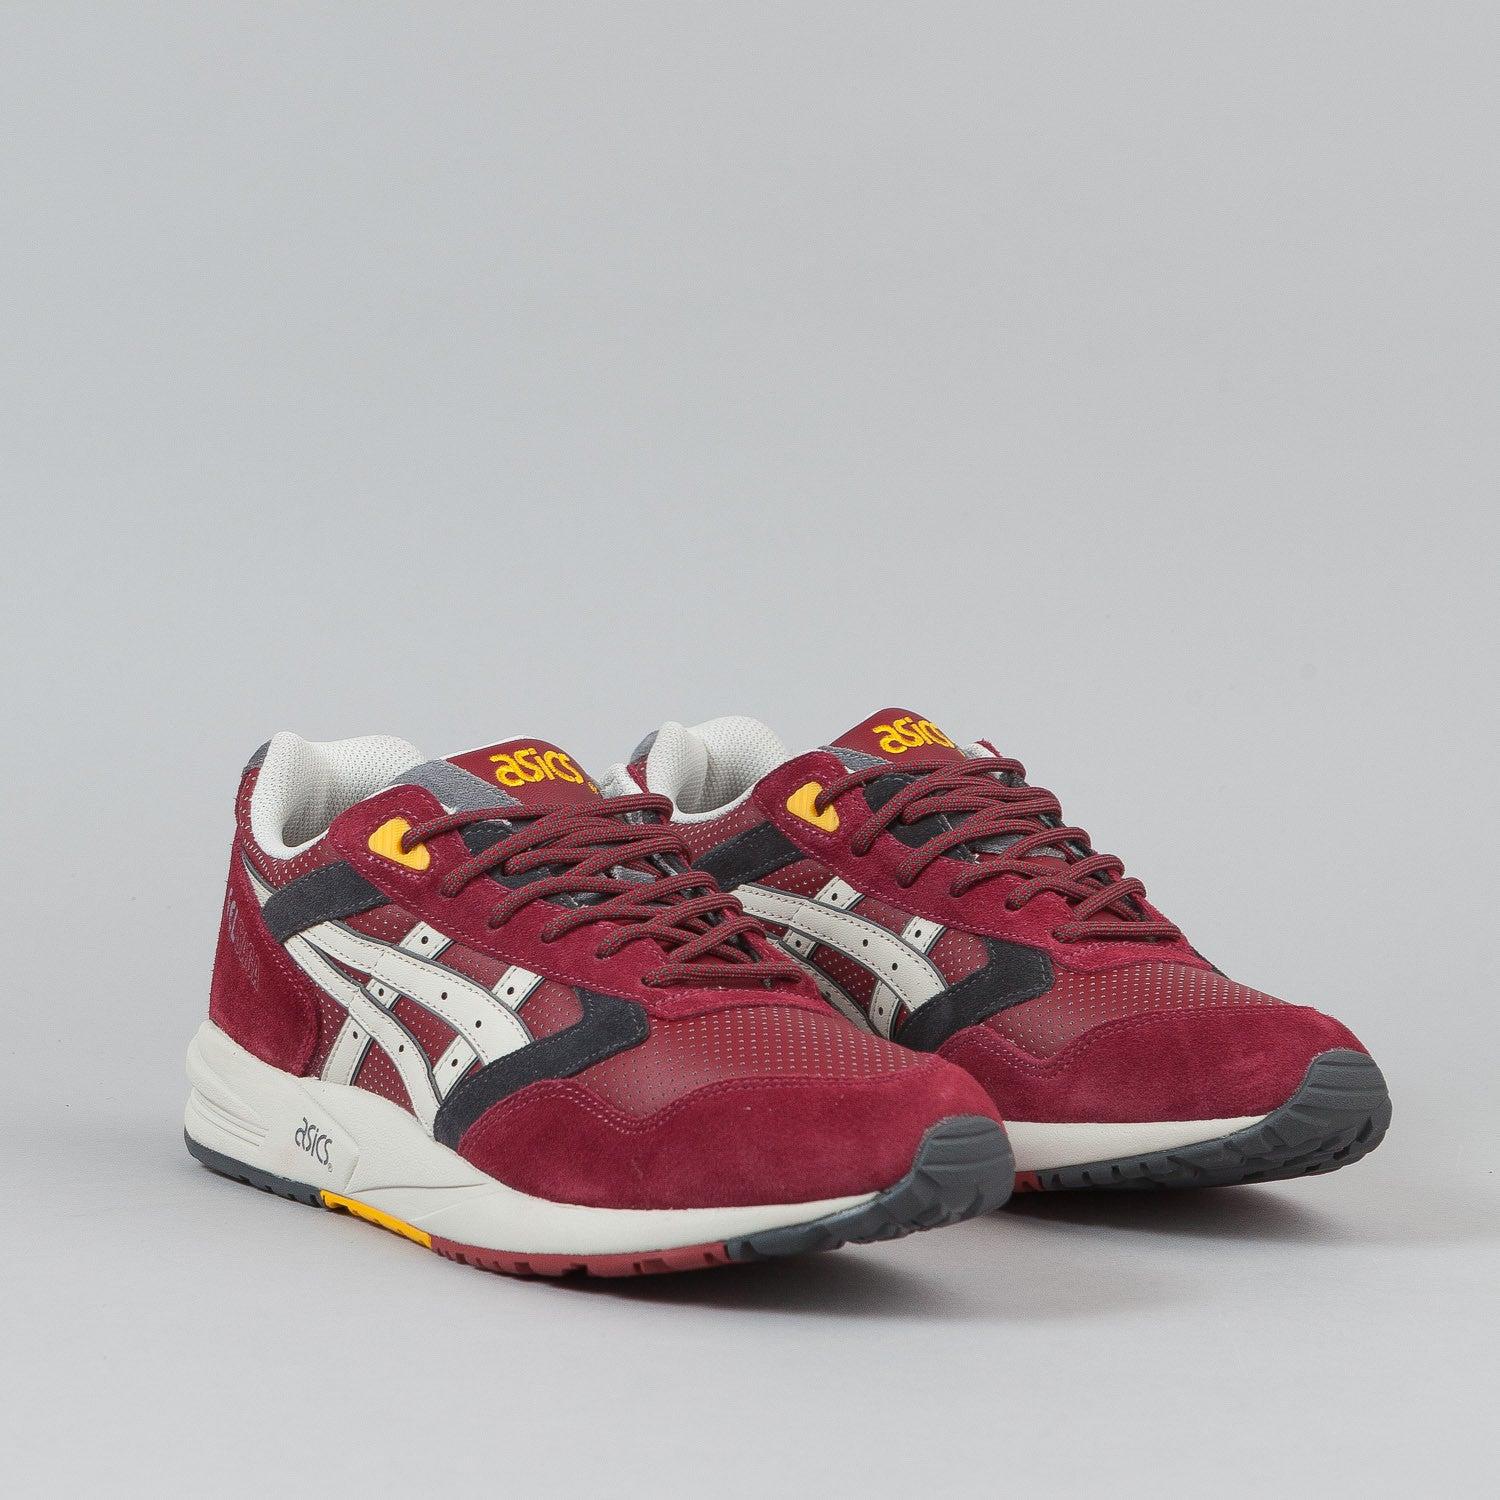 Asics Gel Saga Shoes 'Outdoor' - Burgundy / Off White